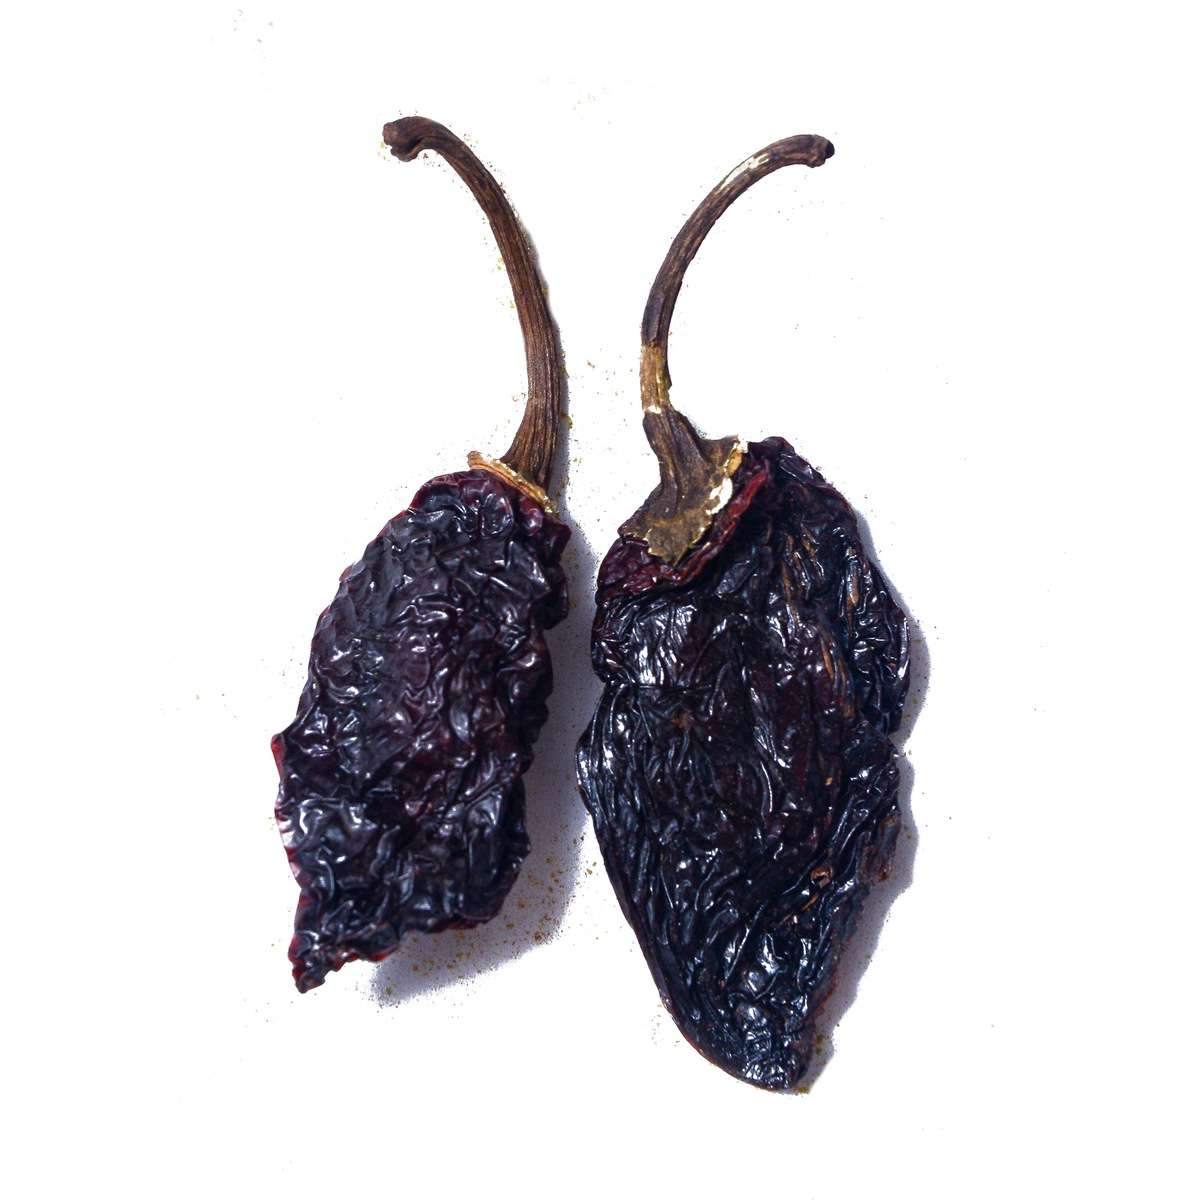 Chipotle Morita Chile Pepper Fresh Produce Group LLC - 7 SUN'S ANCHO CHILE PEPPER DIREC(click image to view)